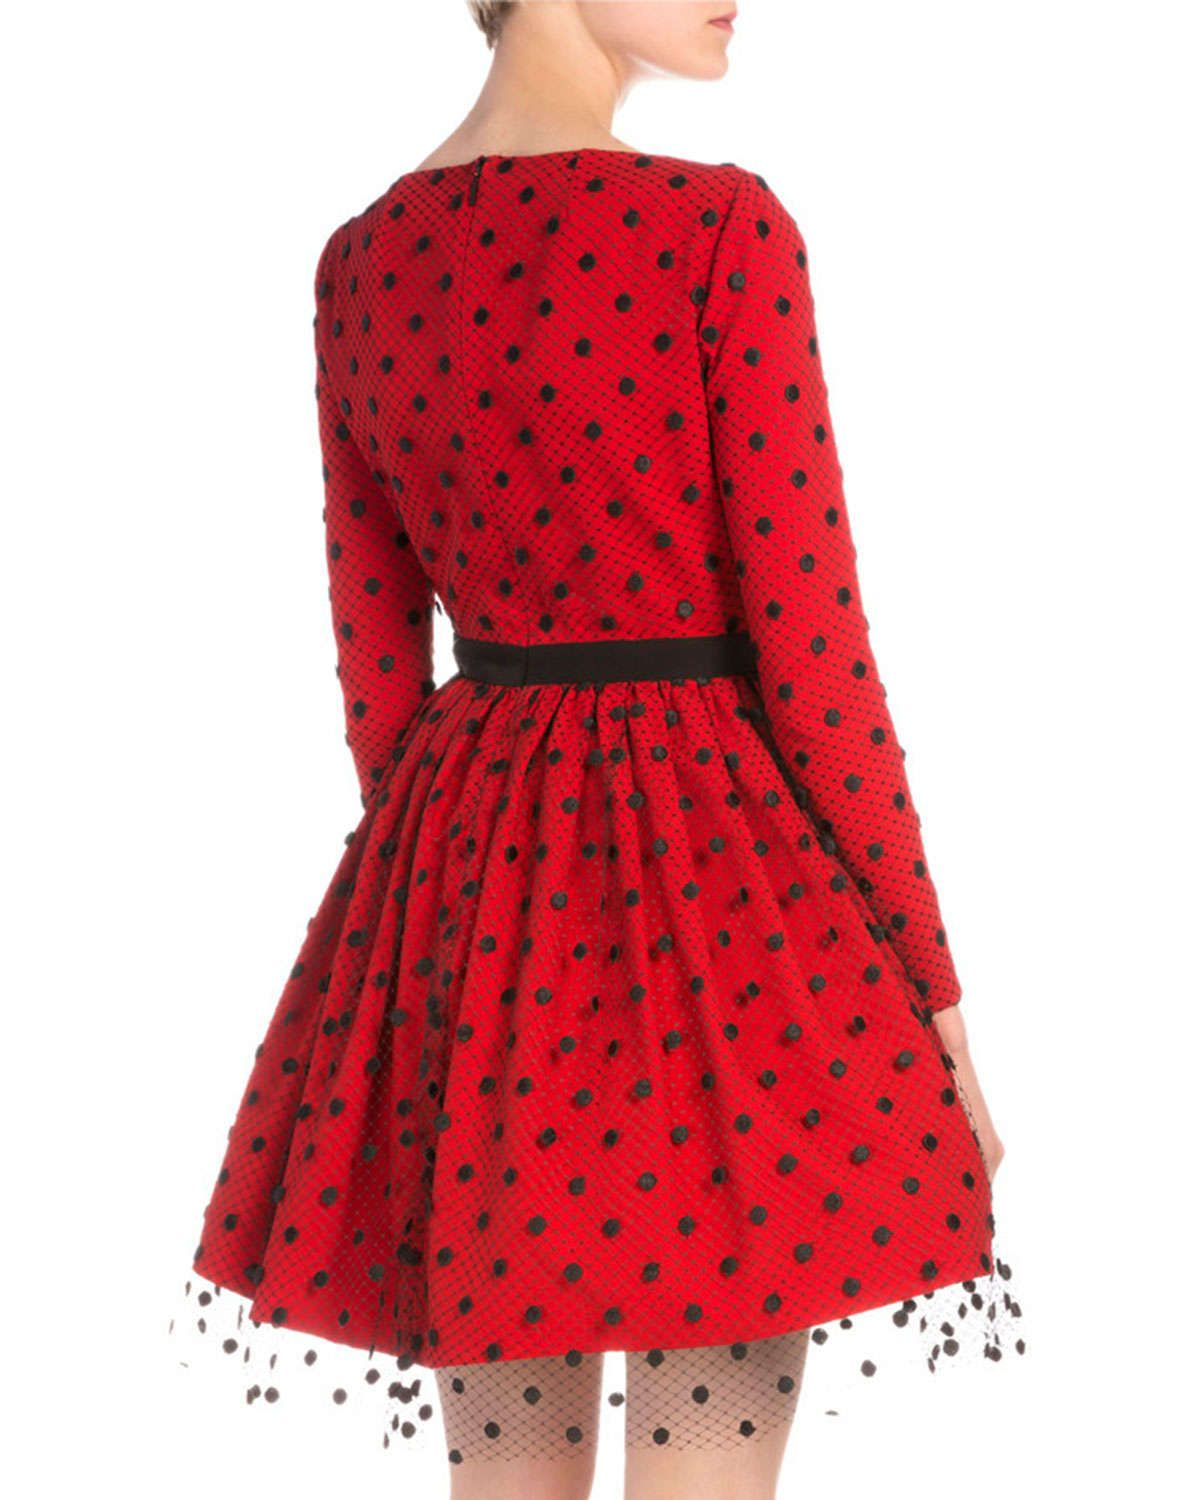 Point duesprit fitandflare dress free shipping and products